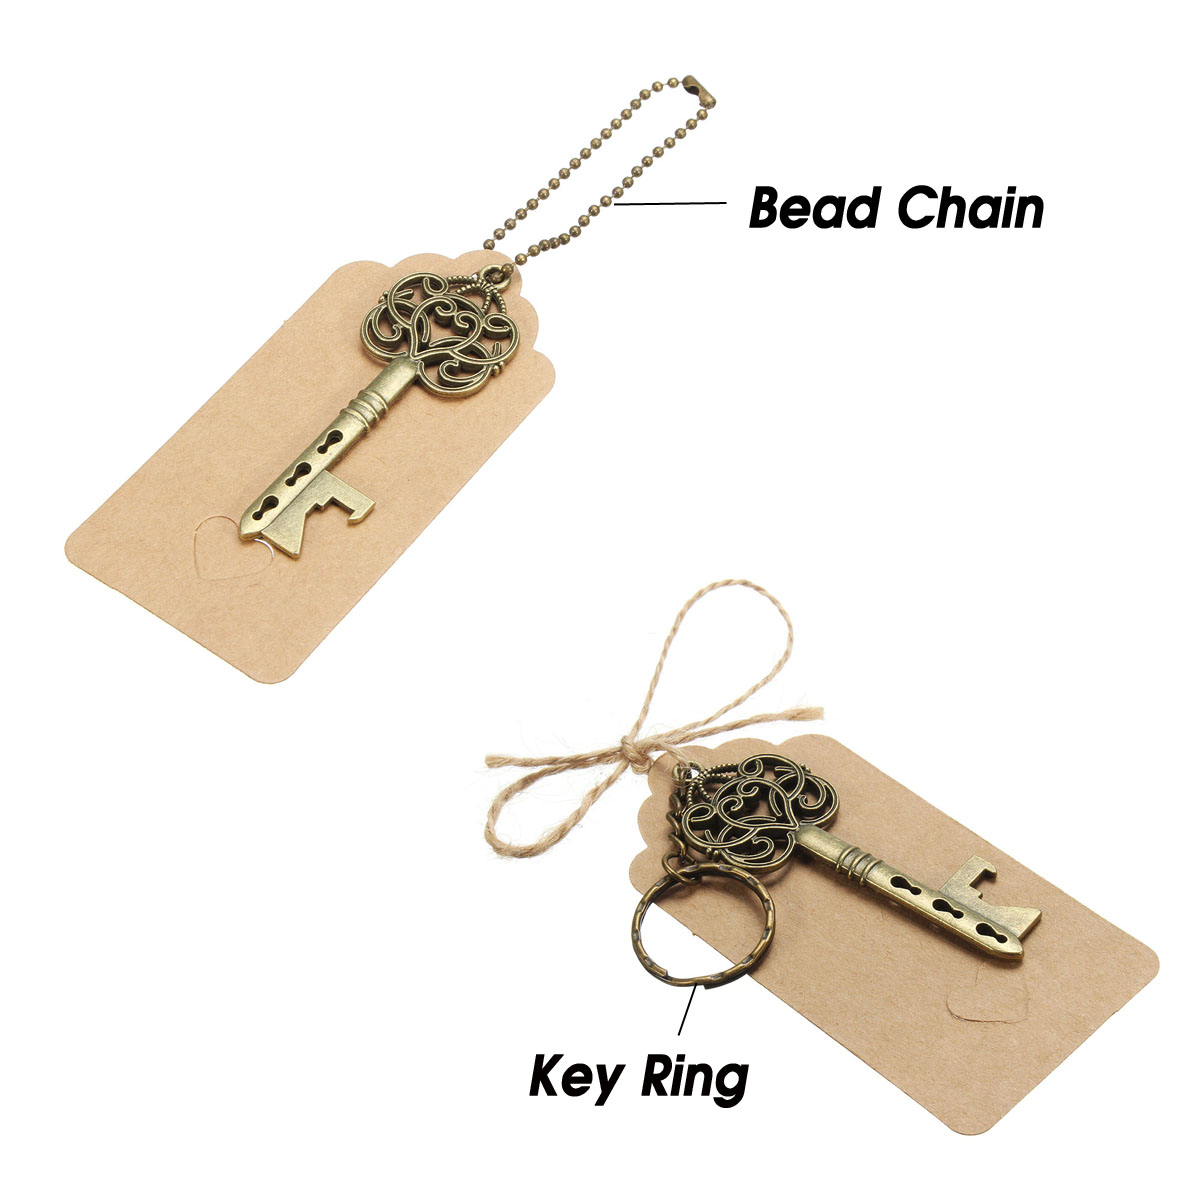 3Pcs Vintage Key Bottle Opener Wedding Favor Gift Candy Box Set Kit